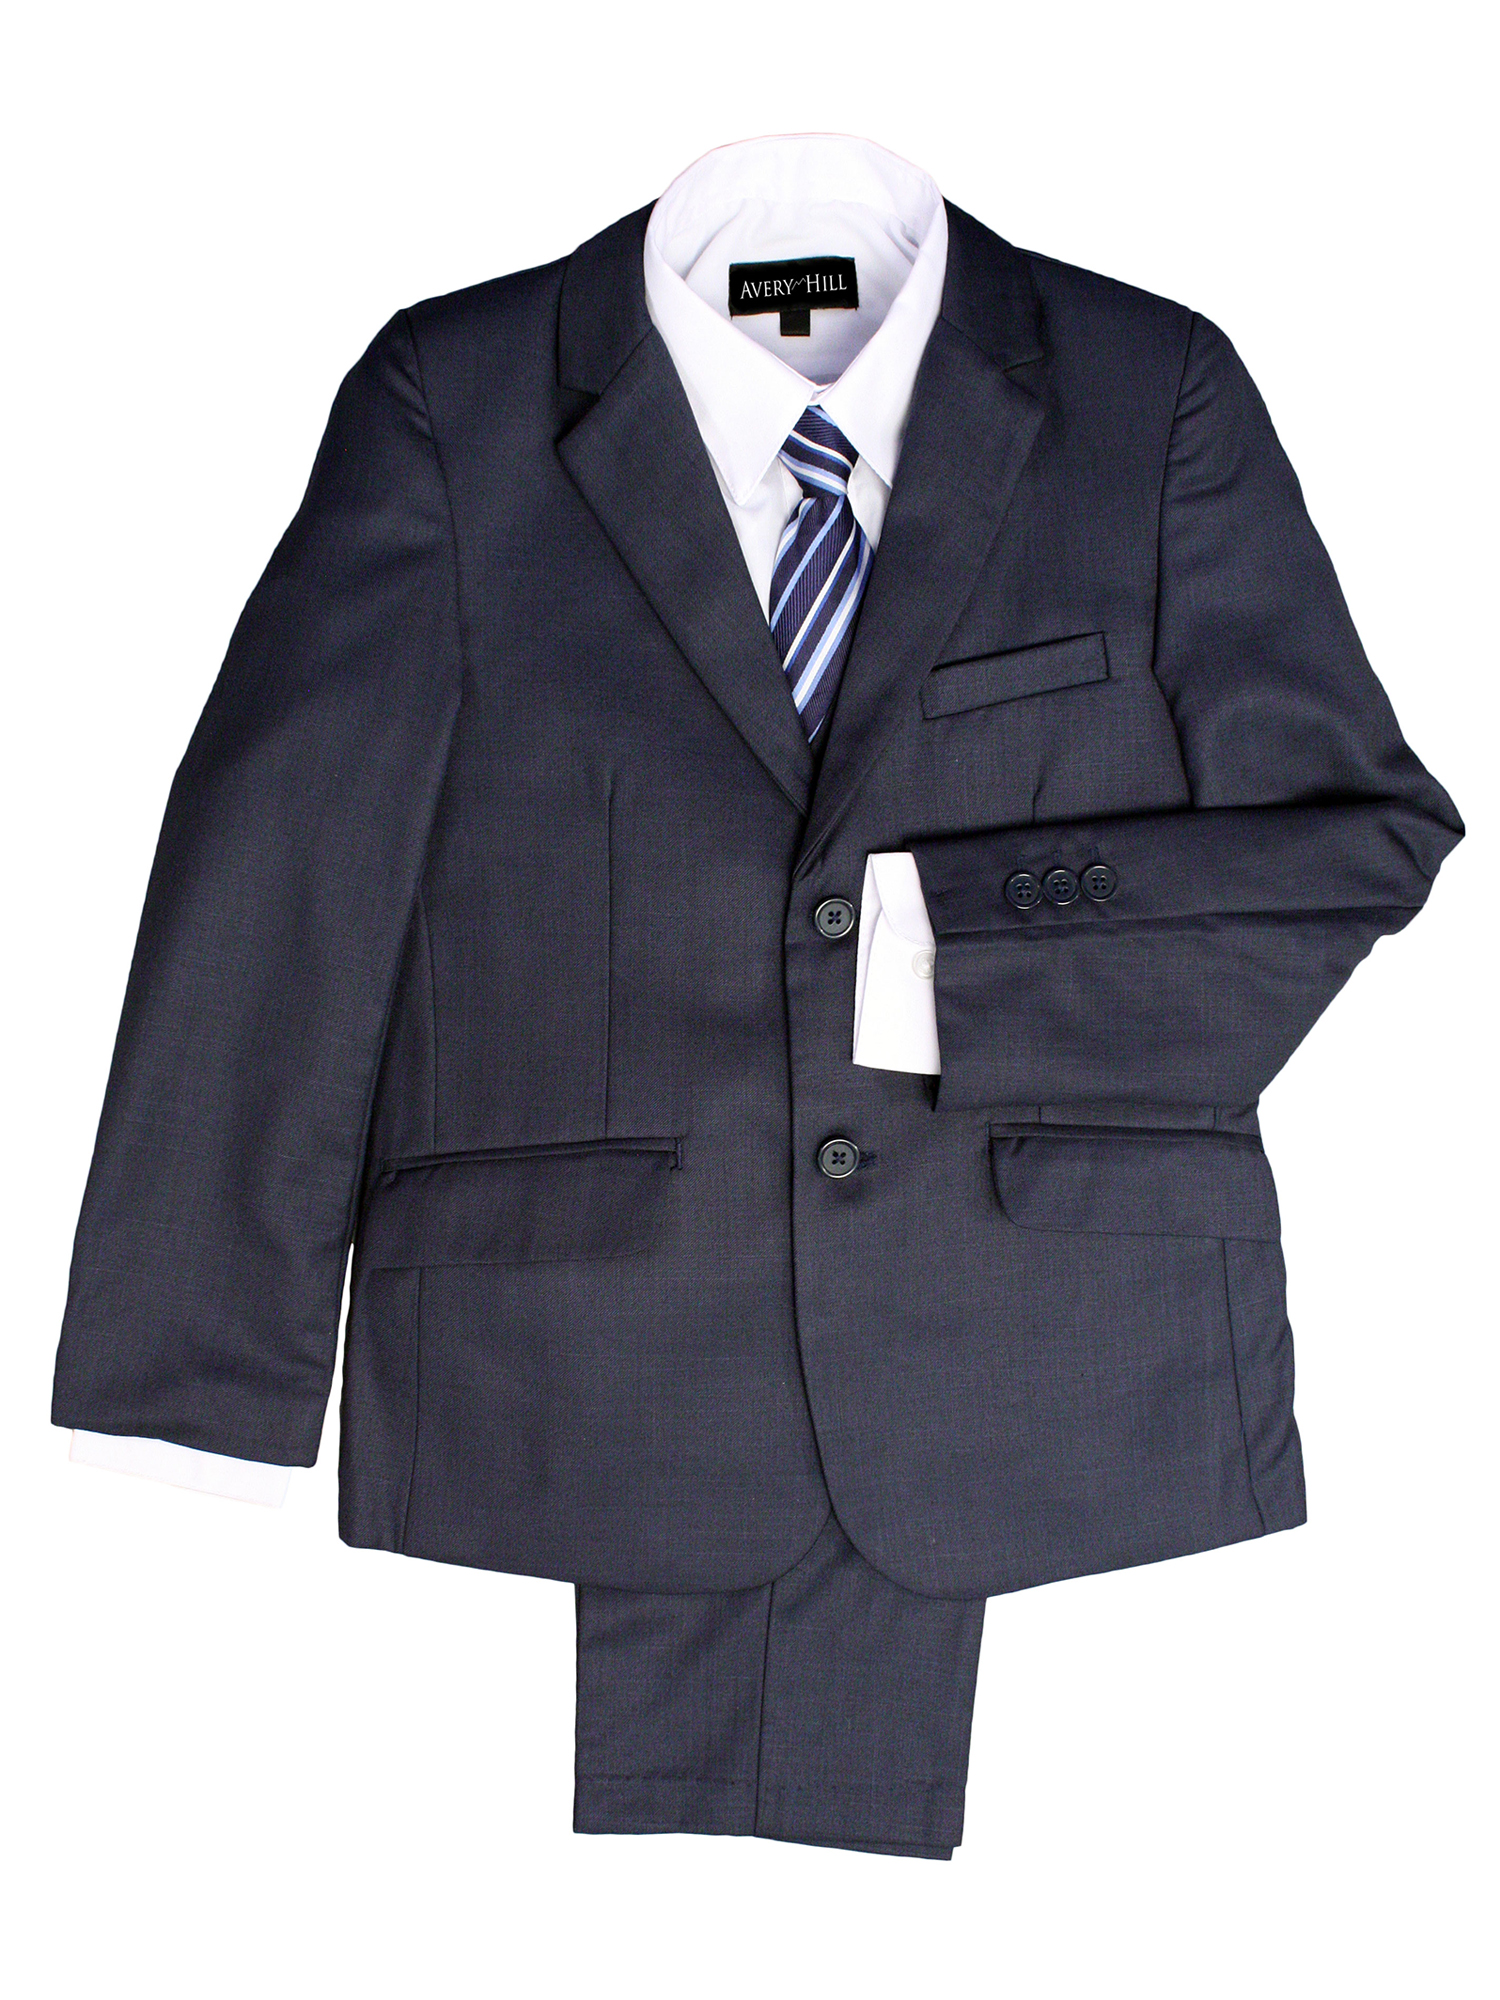 Avery Hill Boys Formal 5 Piece Suit With Shirt, Vest, and Tie